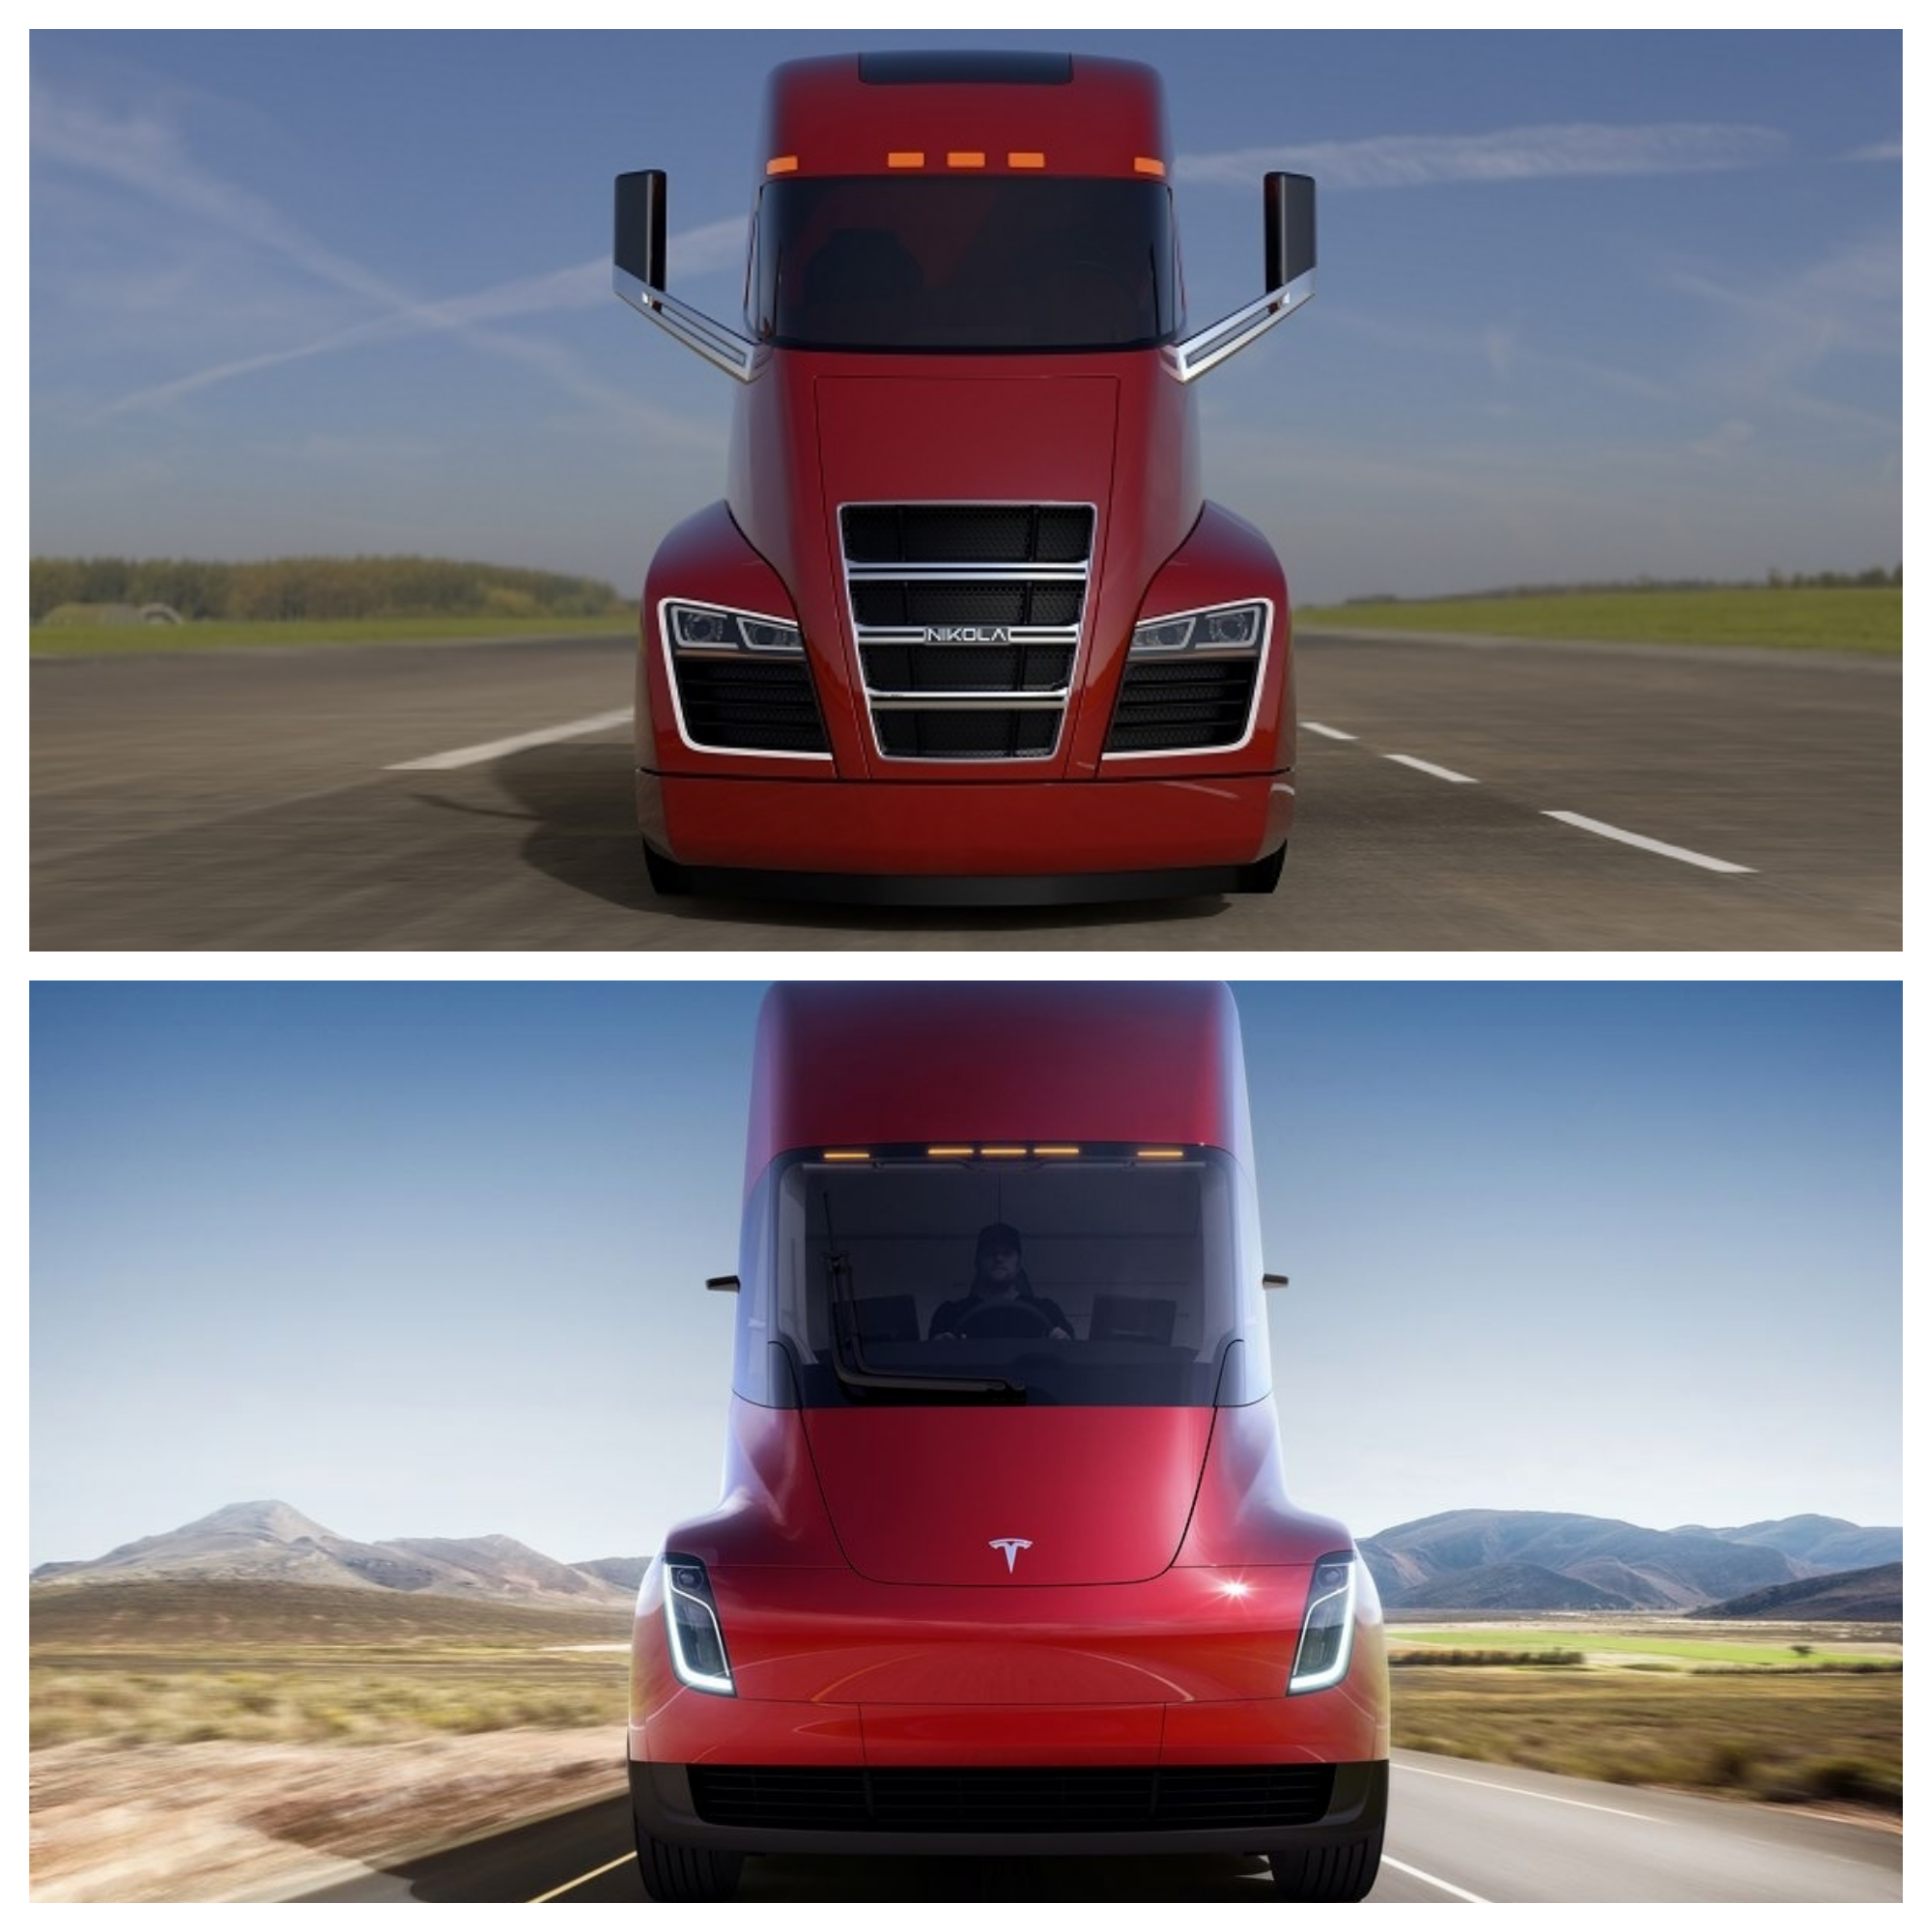 Nikola Motors suing Tesla for $2 billion over patent infringement